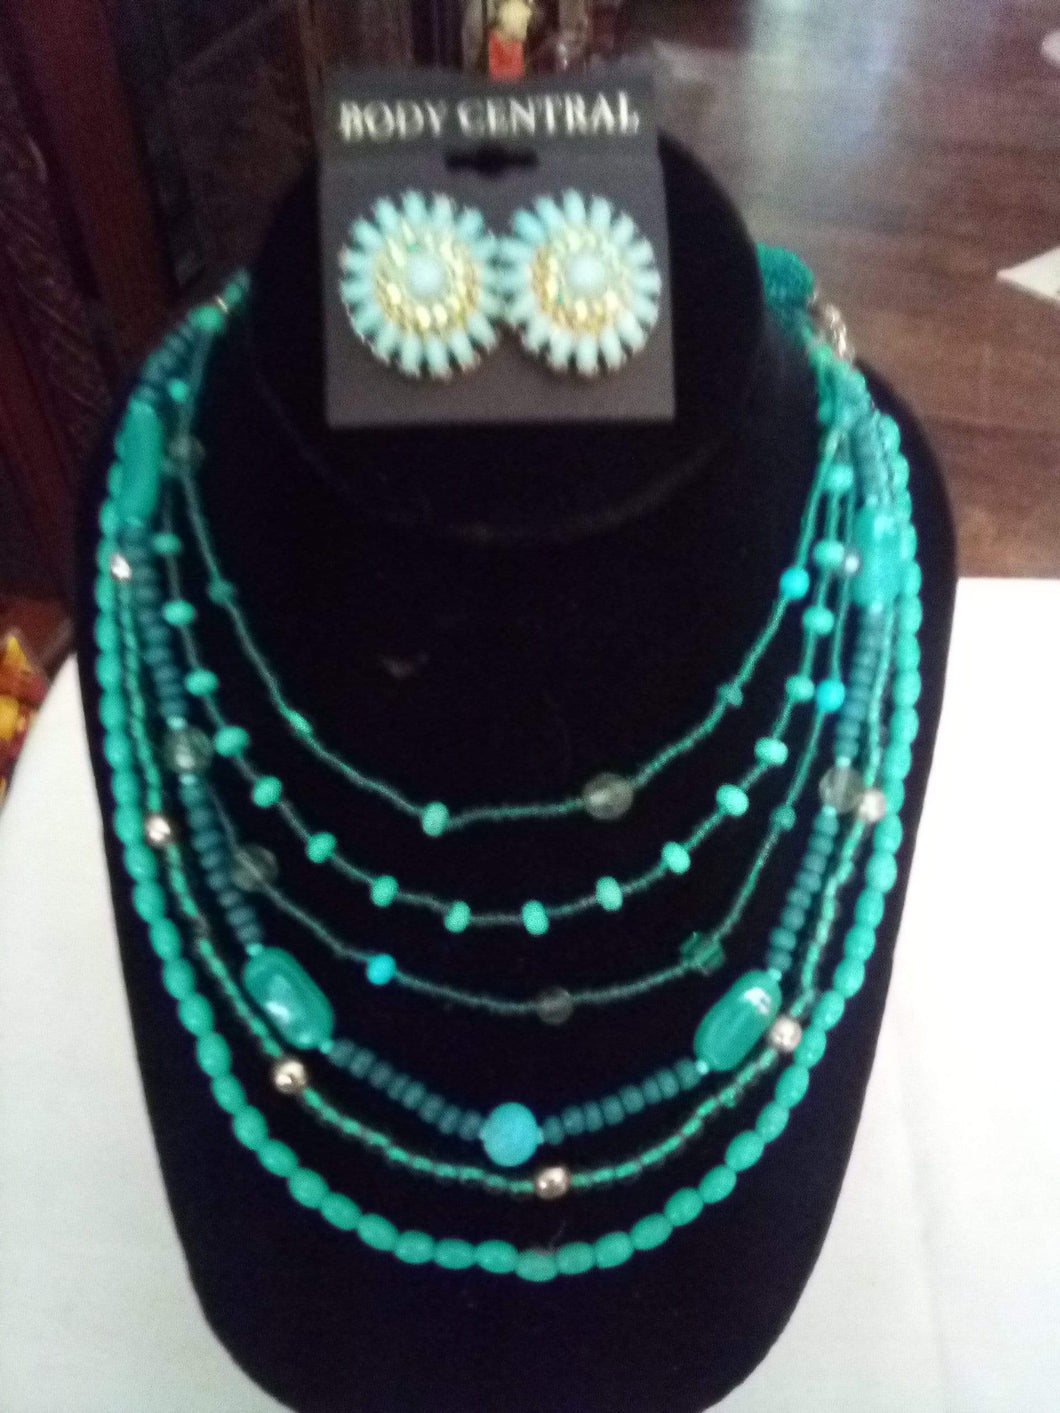 Light blue multi tier dressy necklace with pair pierced earringss - B&P'sringsnthings